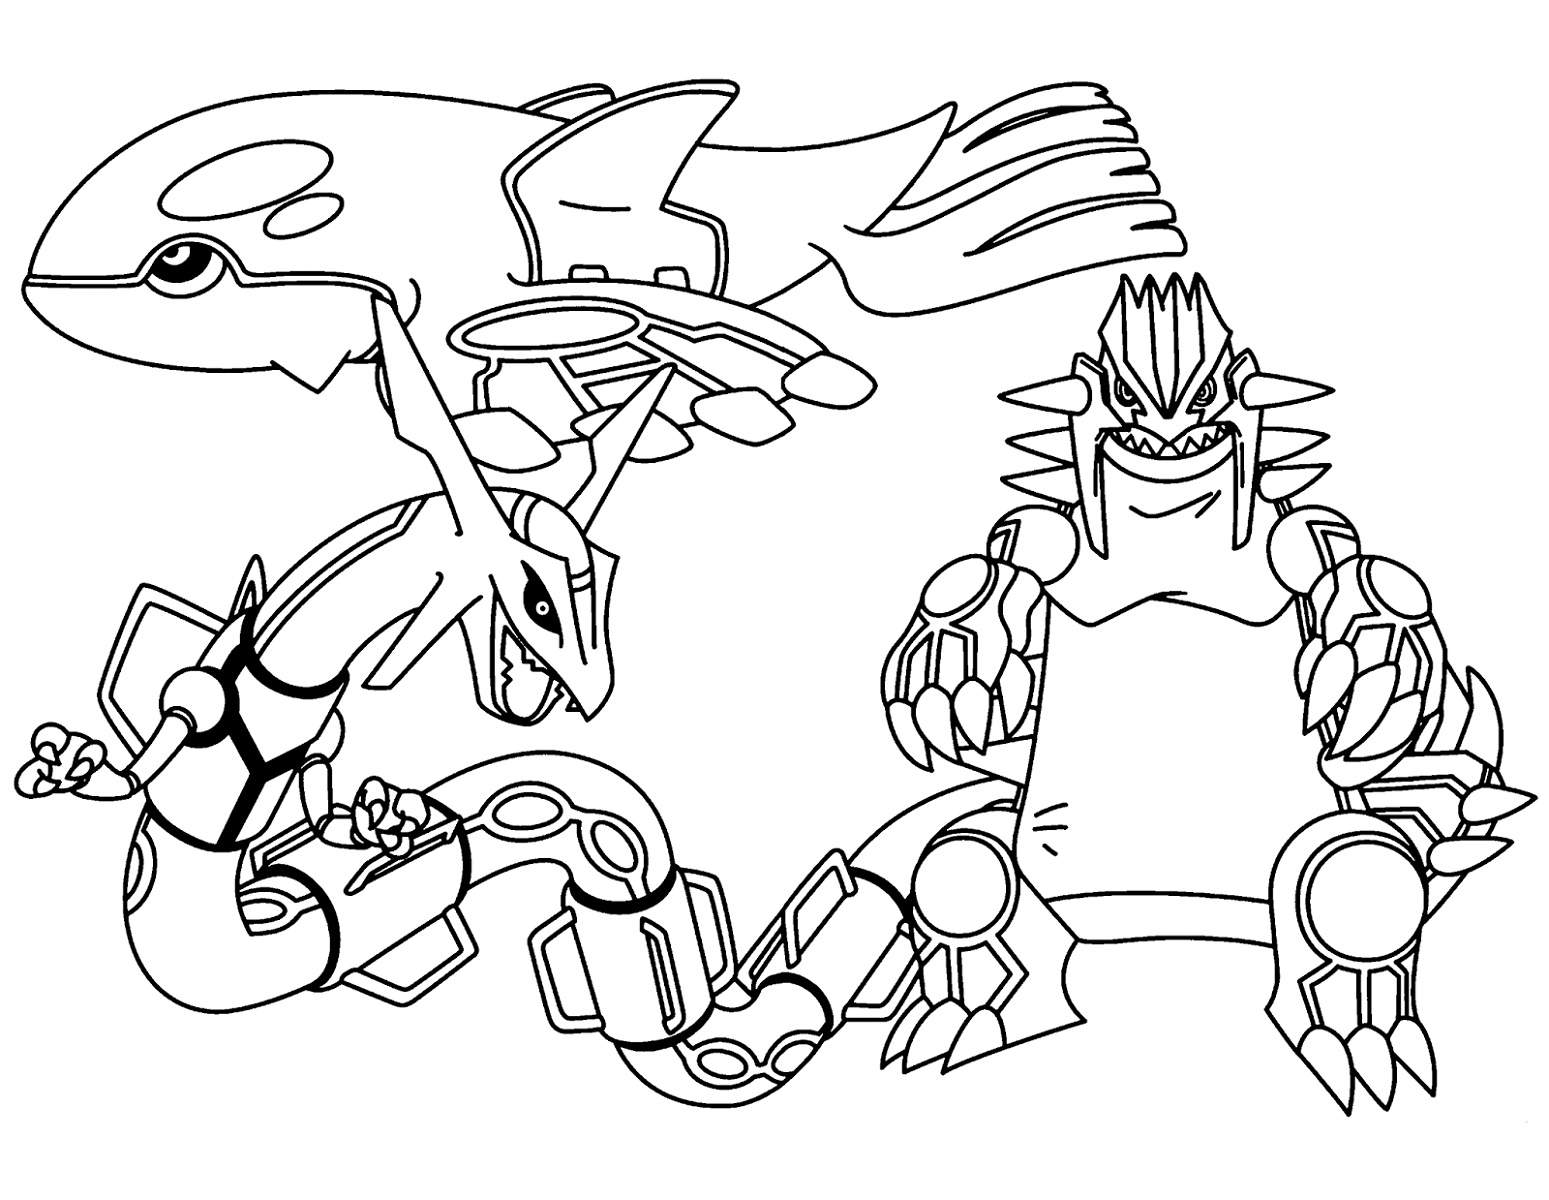 Legendary Pokemon Coloring Pages Free